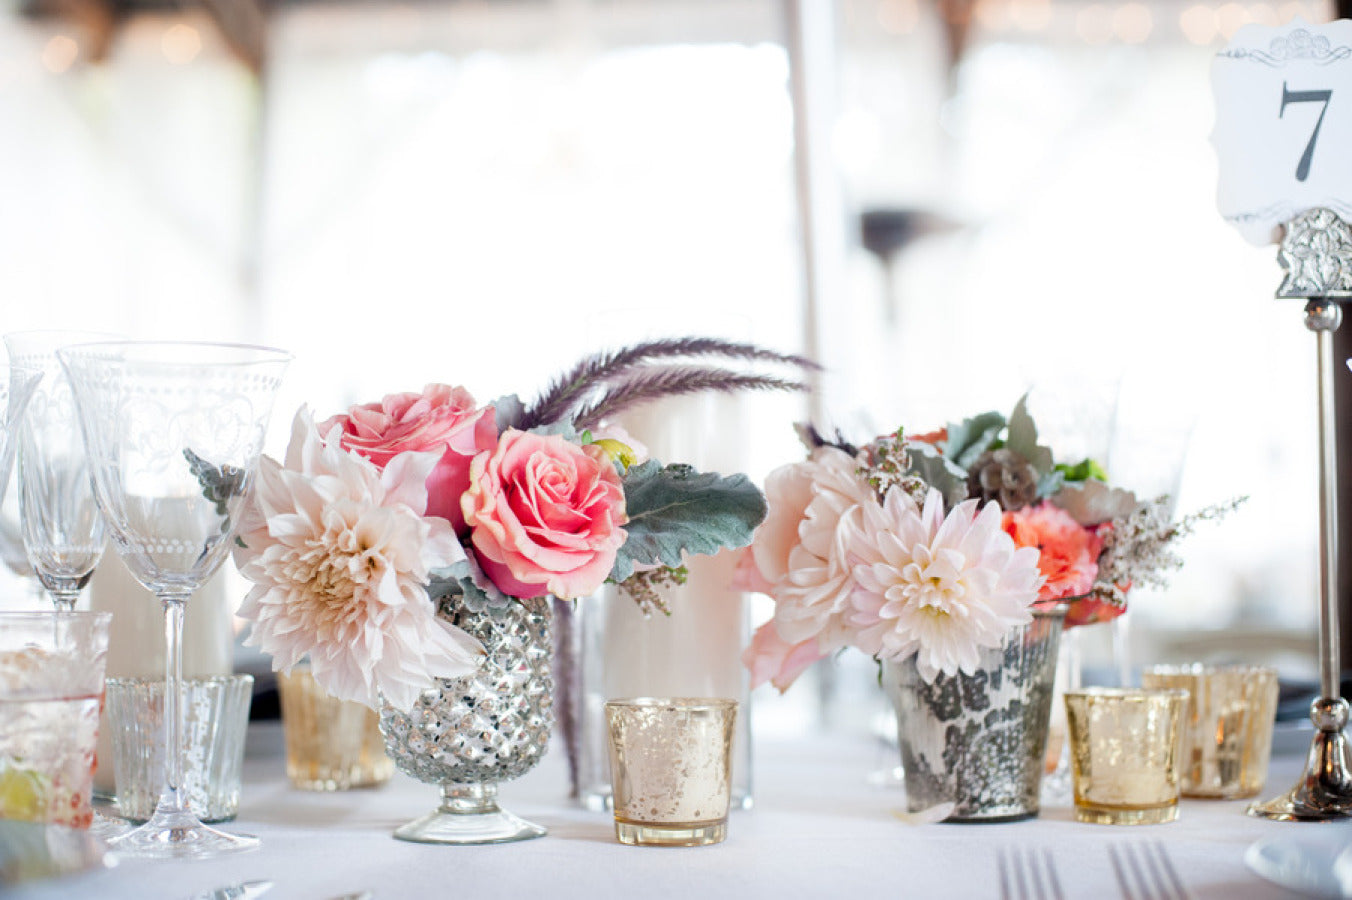 15 Inspiring Wedding Table Top Decorations